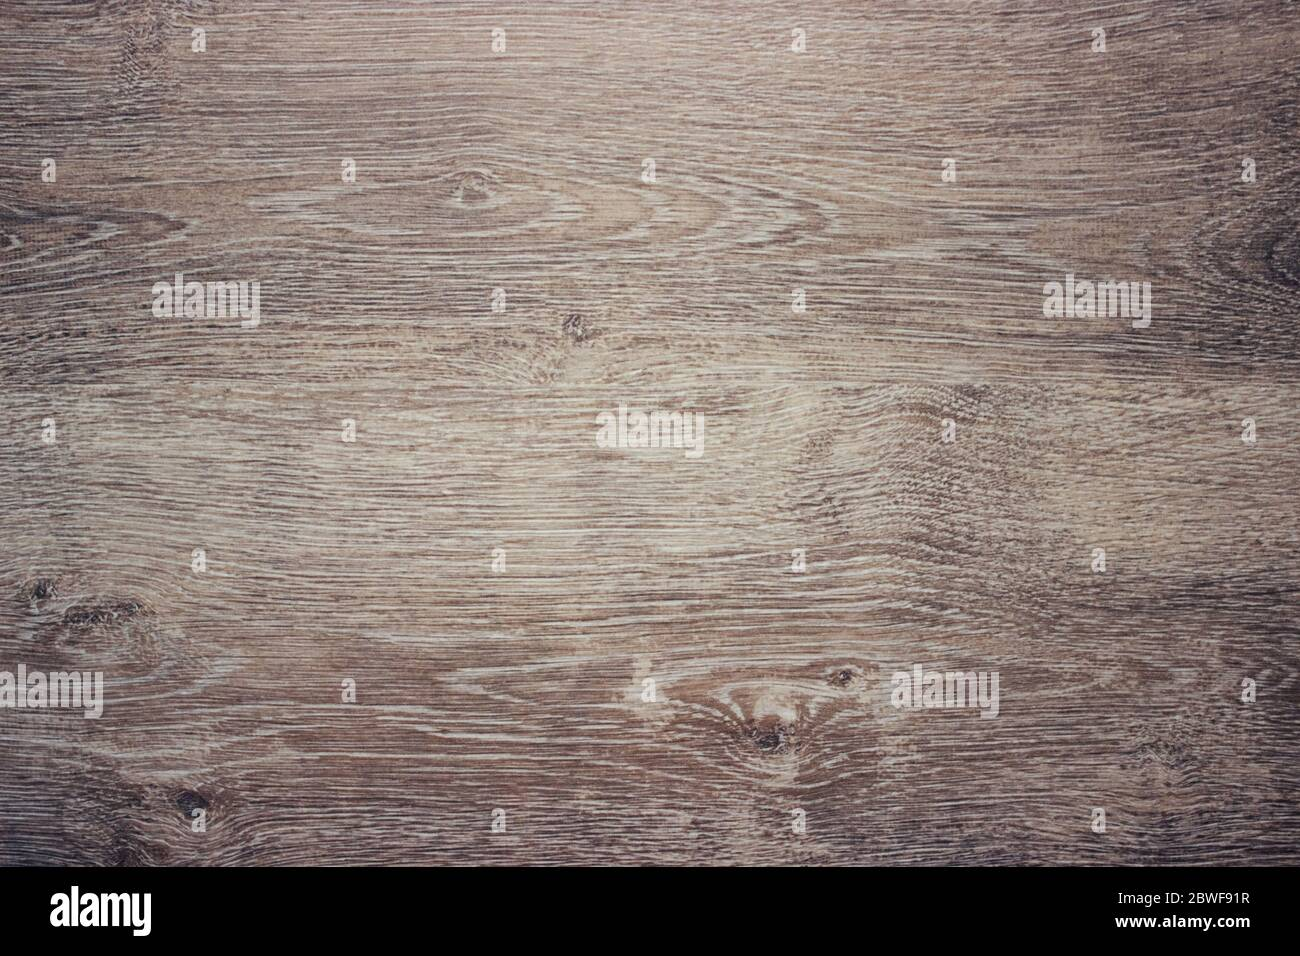 Wood Texture With Natural Wood Pattern For Design And Decoration Dark Brown Wood Background Natural Teak Wood Background Laminate Parquet Floor Tex Stock Photo Alamy